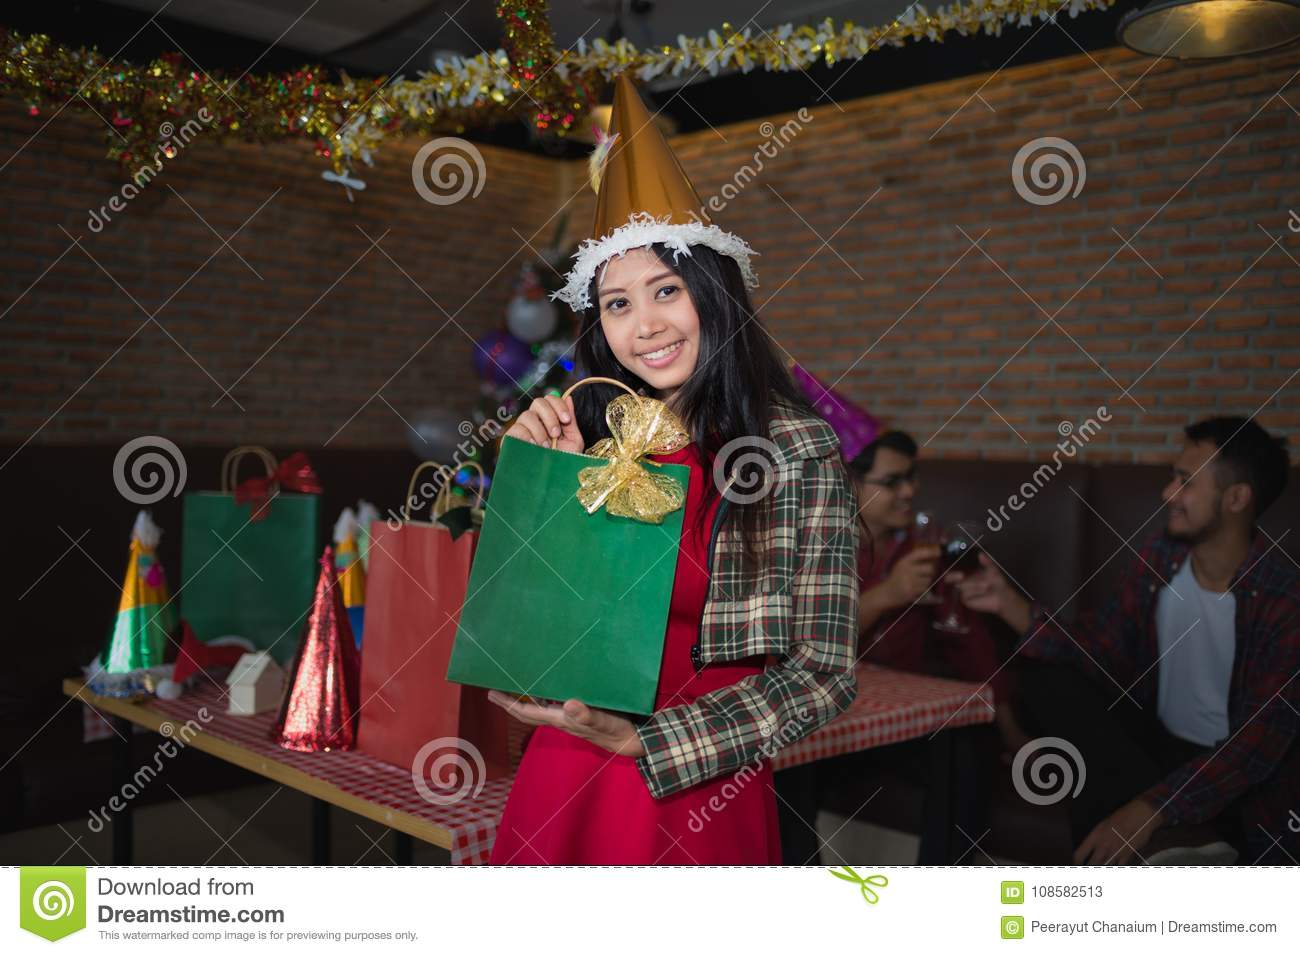 Beautiful woman wear santa claus hat showing green gift bag on hand in restaurant. concept of Christmas party and New year party.